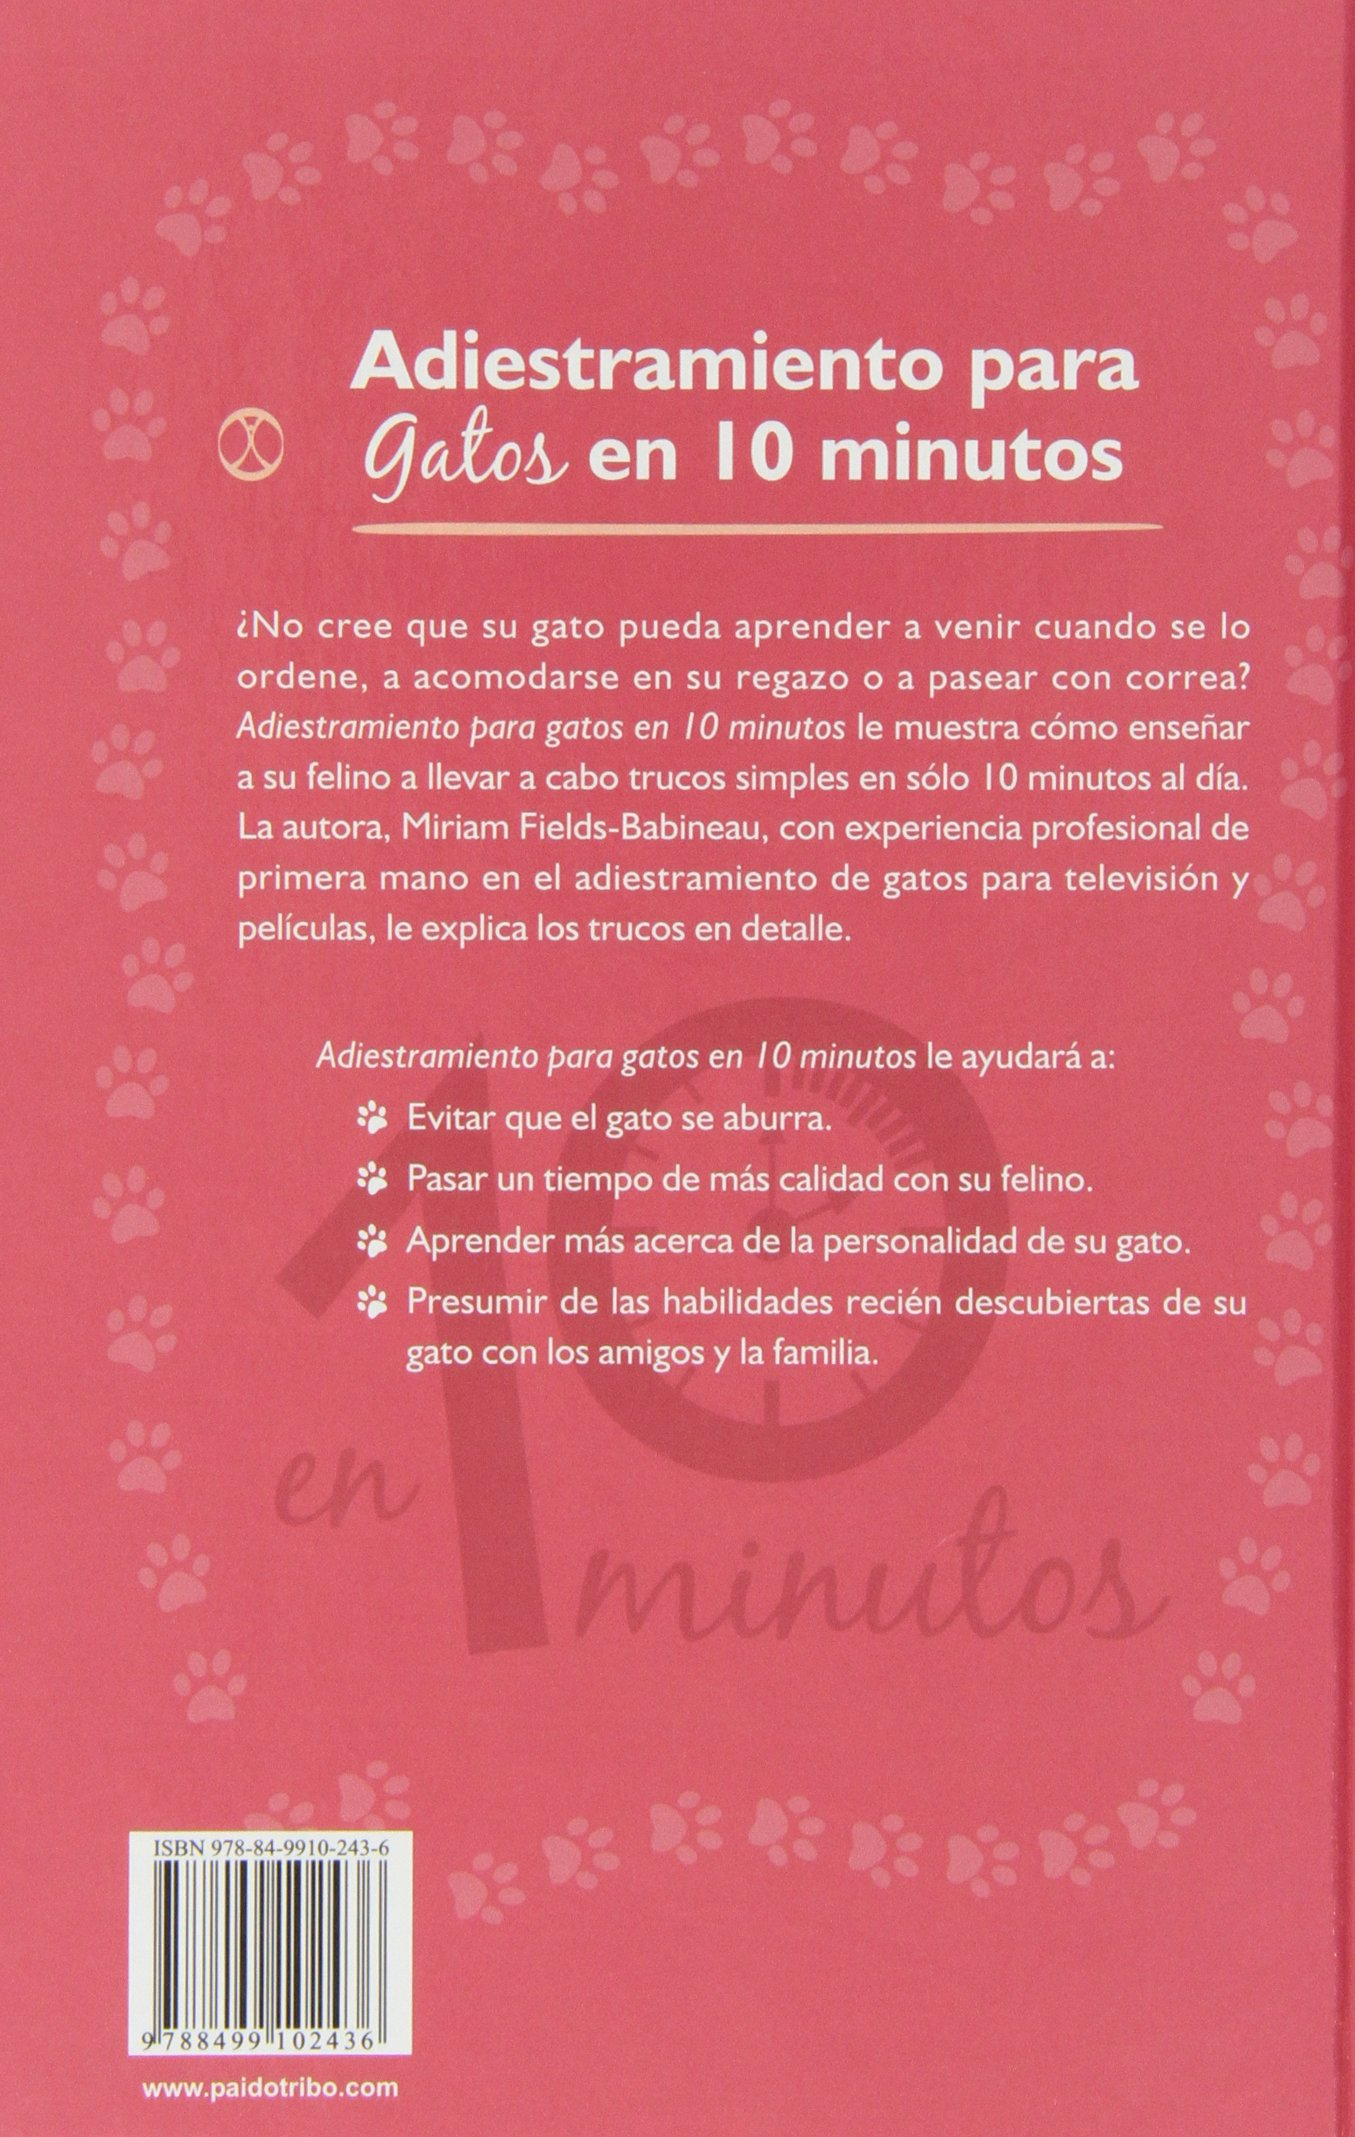 Adiestramiento para gatos en 10 minutos (Spanish Edition): Miriam Fields-Babineau: 9788499102436: Amazon.com: Books